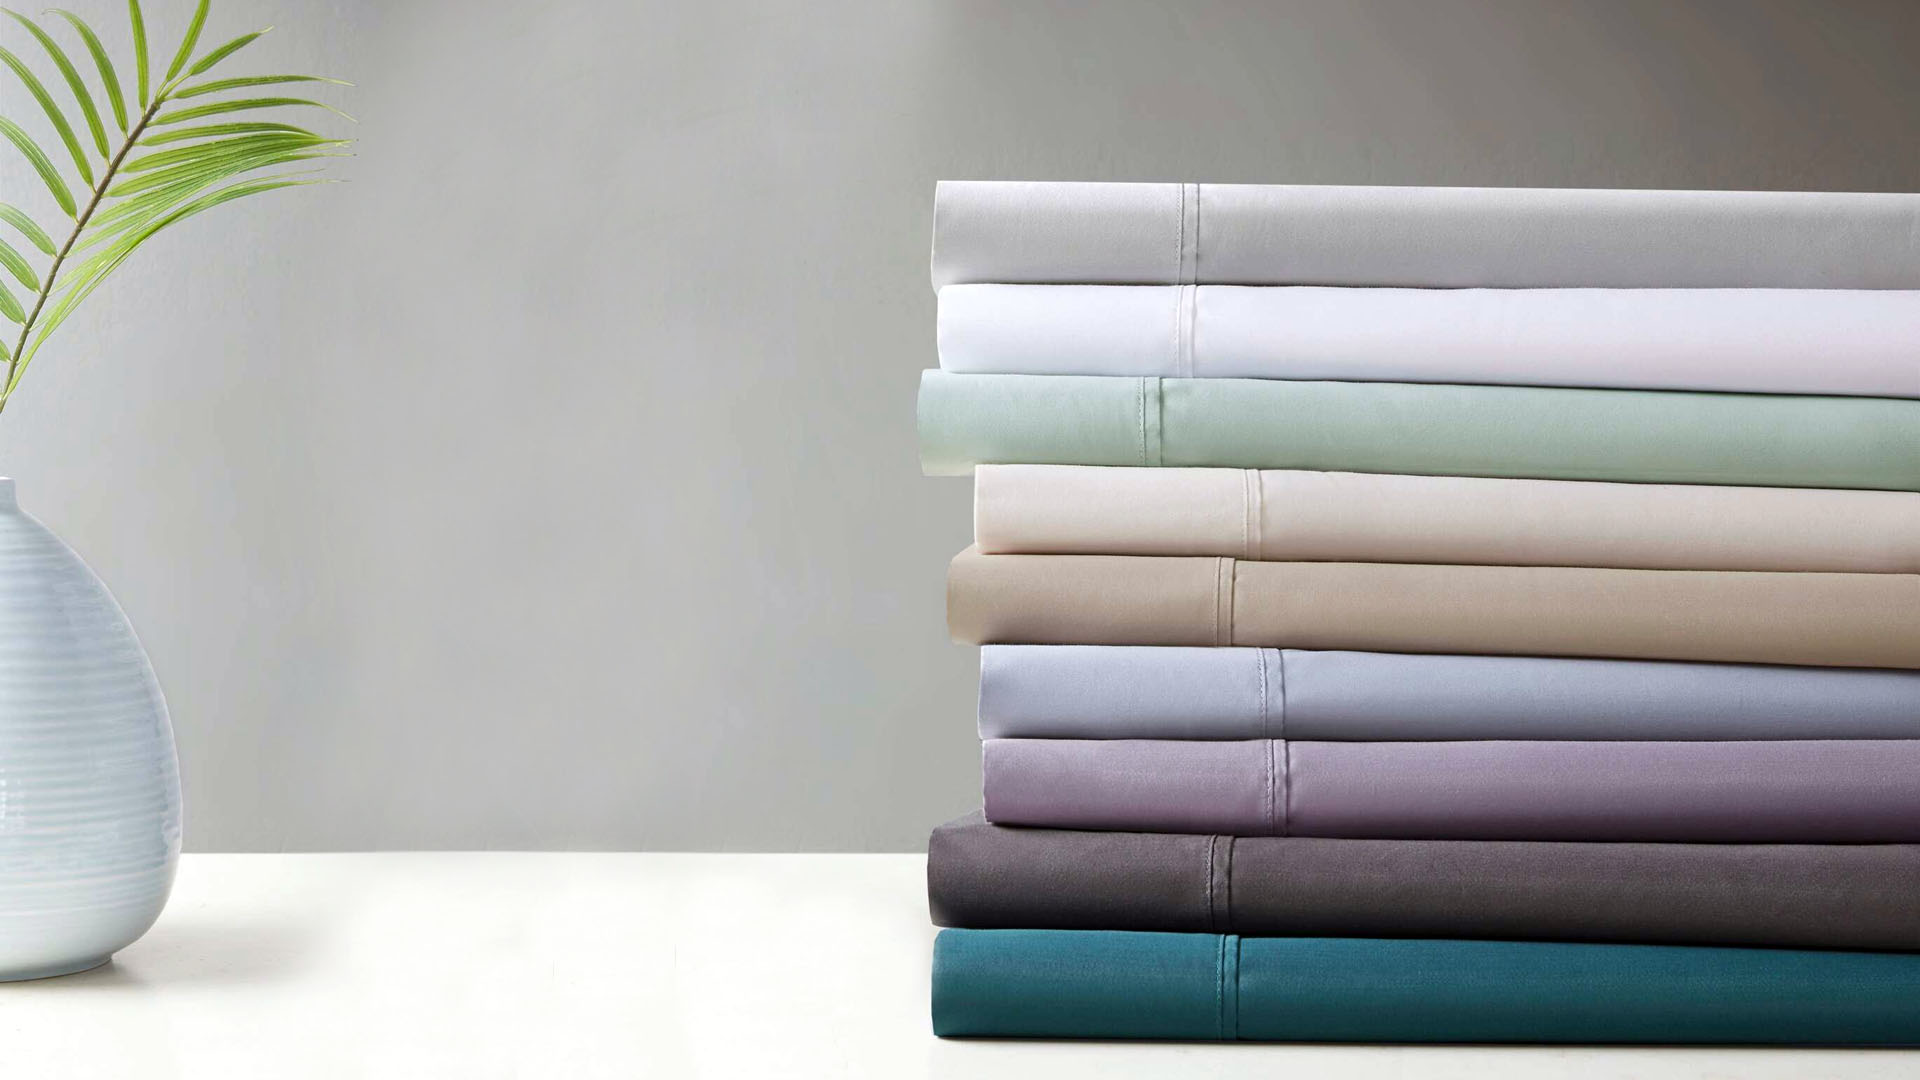 Types of Fabric Used in Bed Sheet